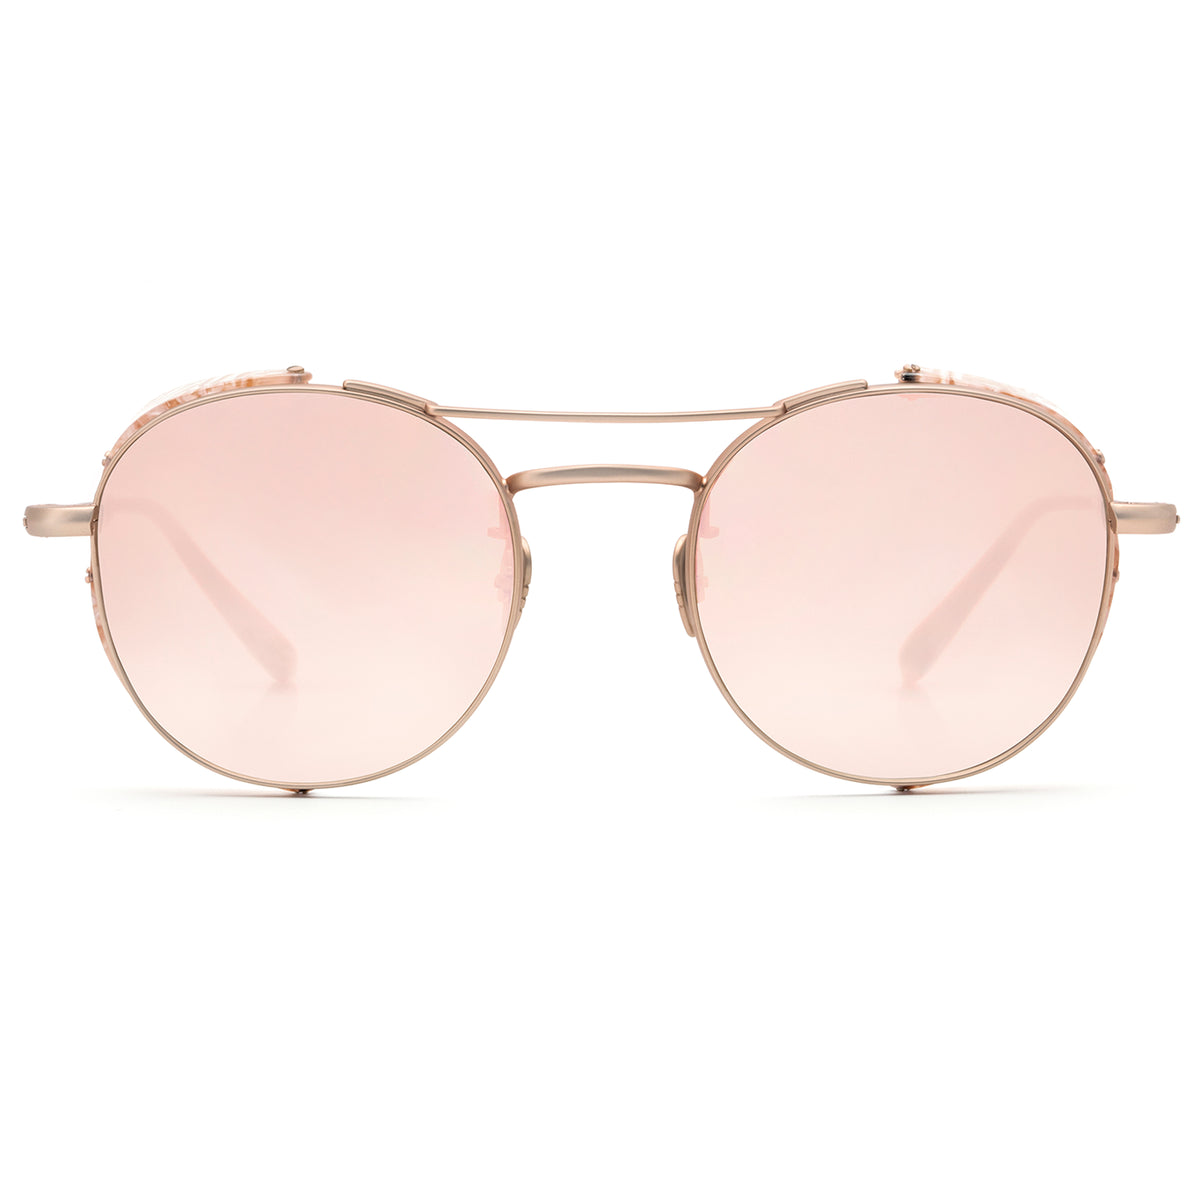 ORLEANS BLINKER | Matte Rose Gold Titanium + Camellia - A seamless combination of premium metal and acetate side blinders for a truly modern pair of Sunglasses.